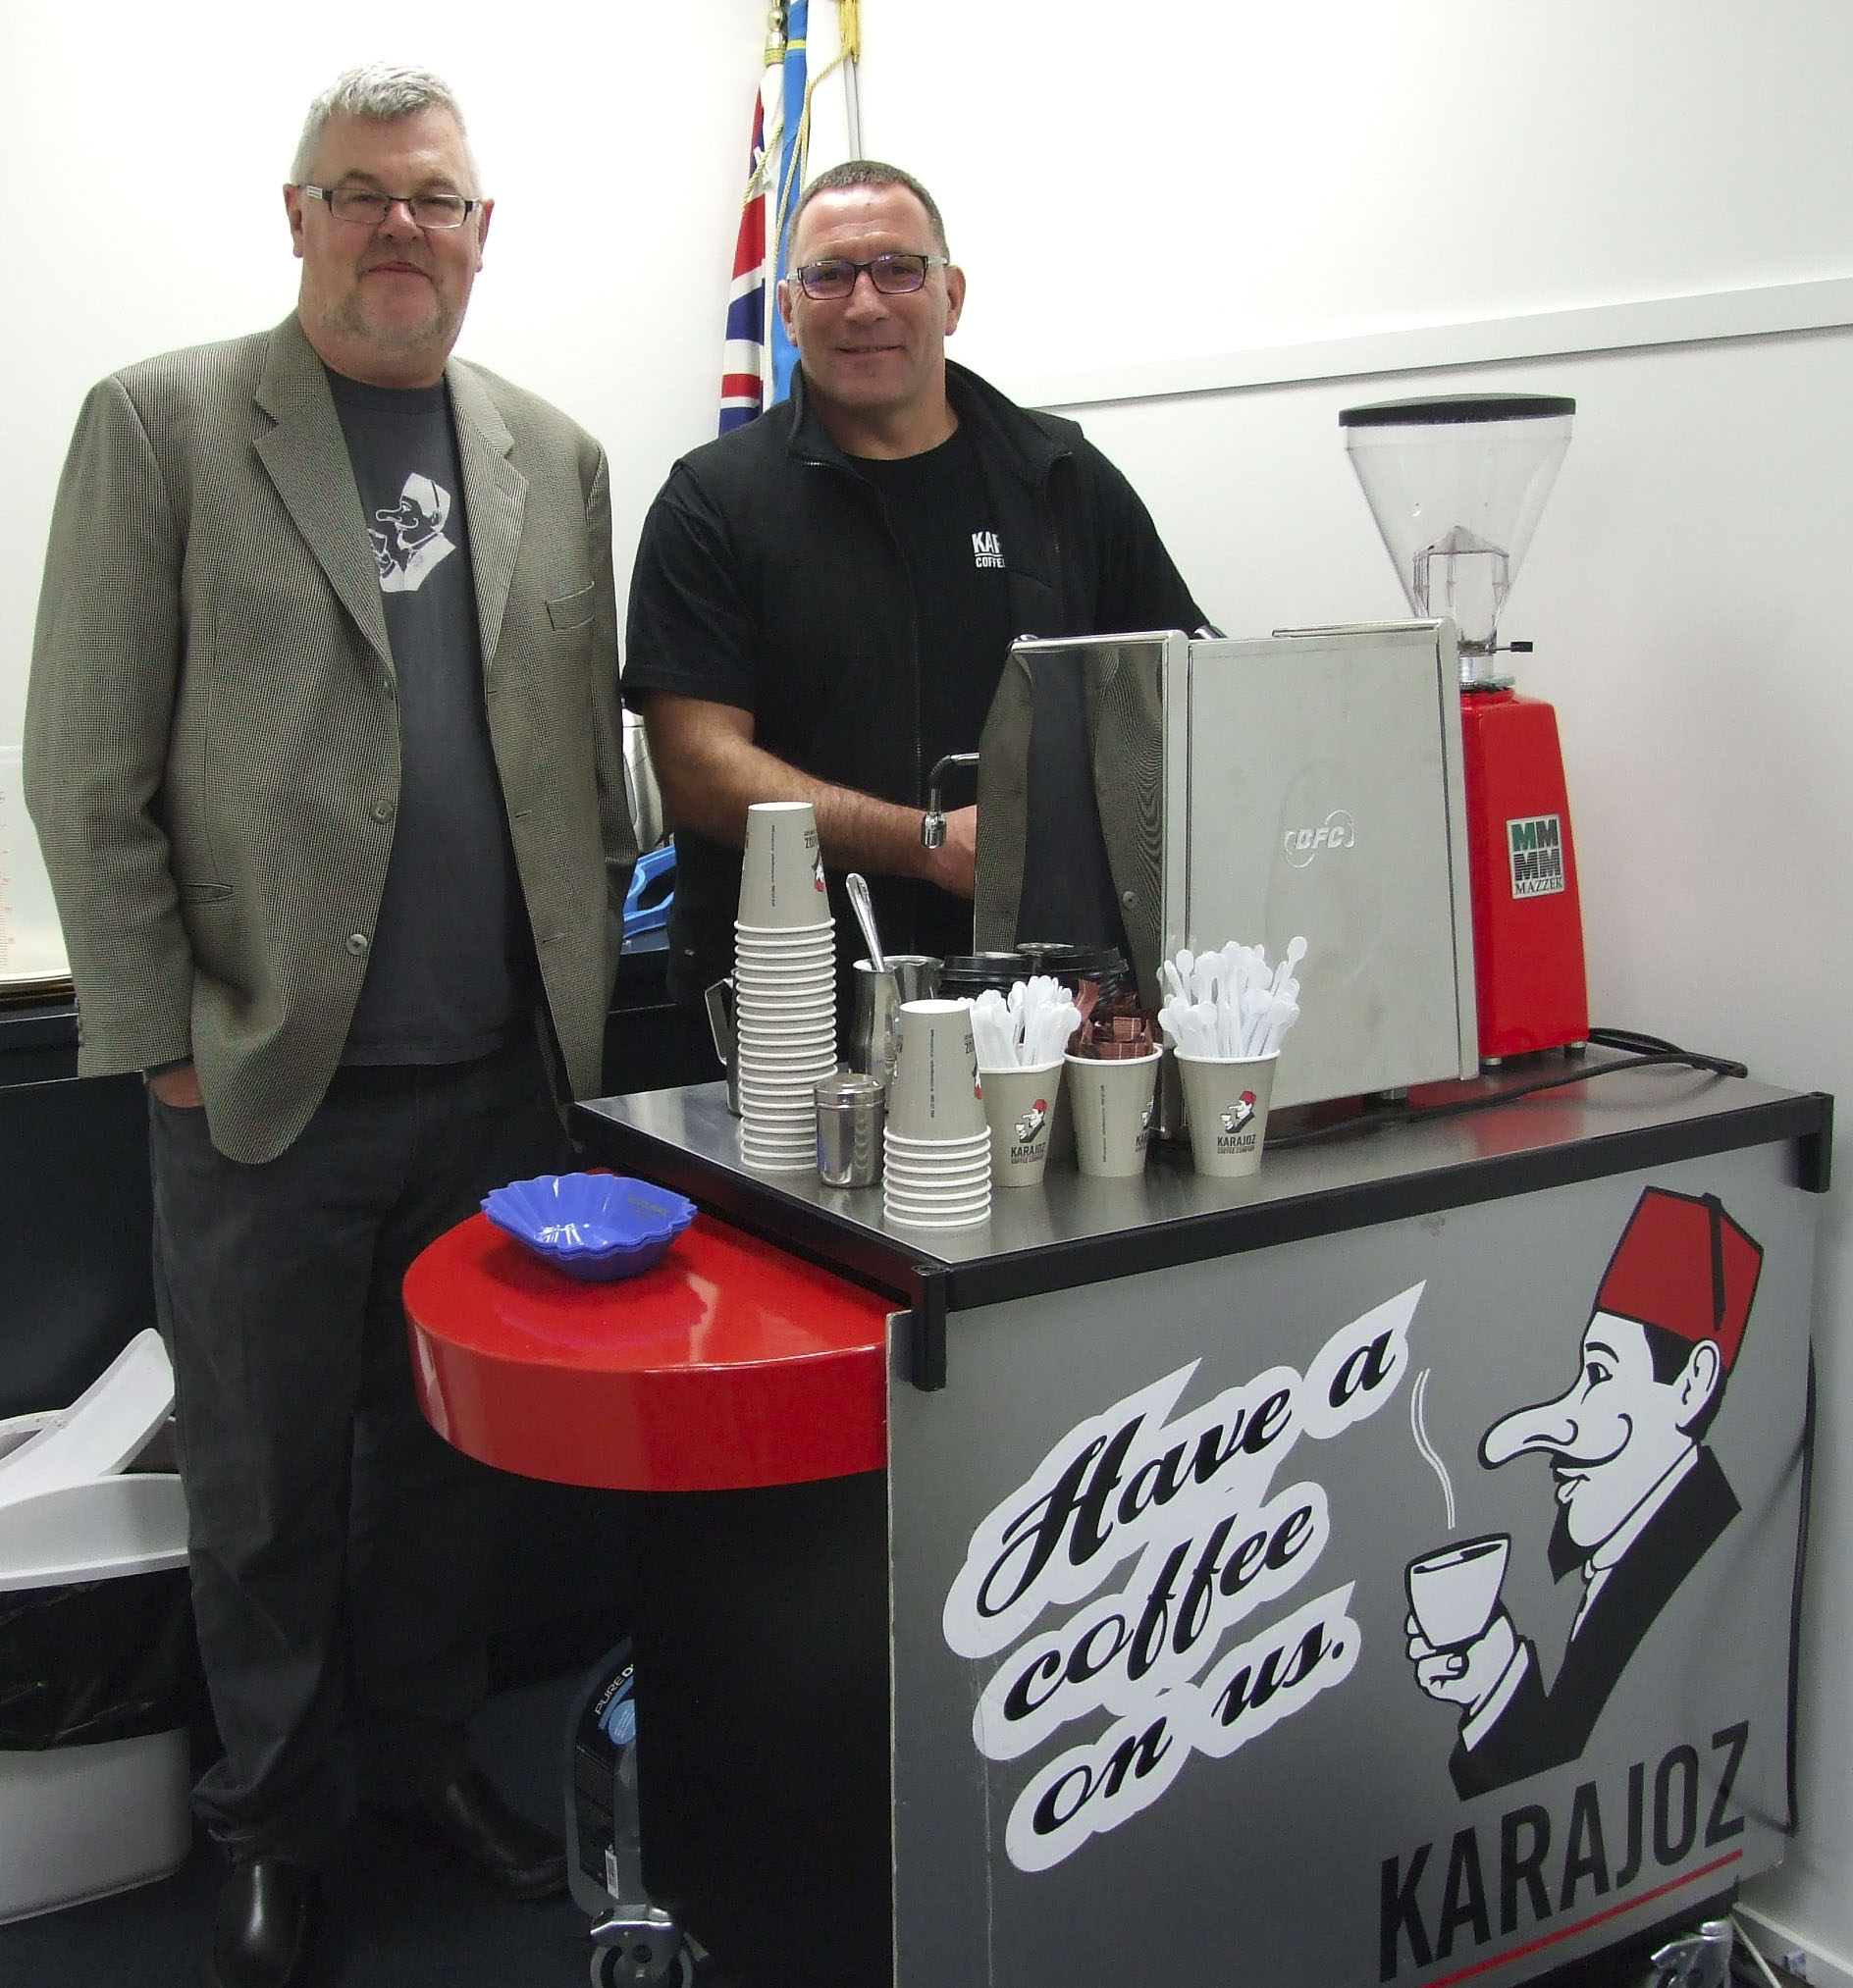 Derek Townsend of Karajoz and top call barista ready to kick start us with Karajoz